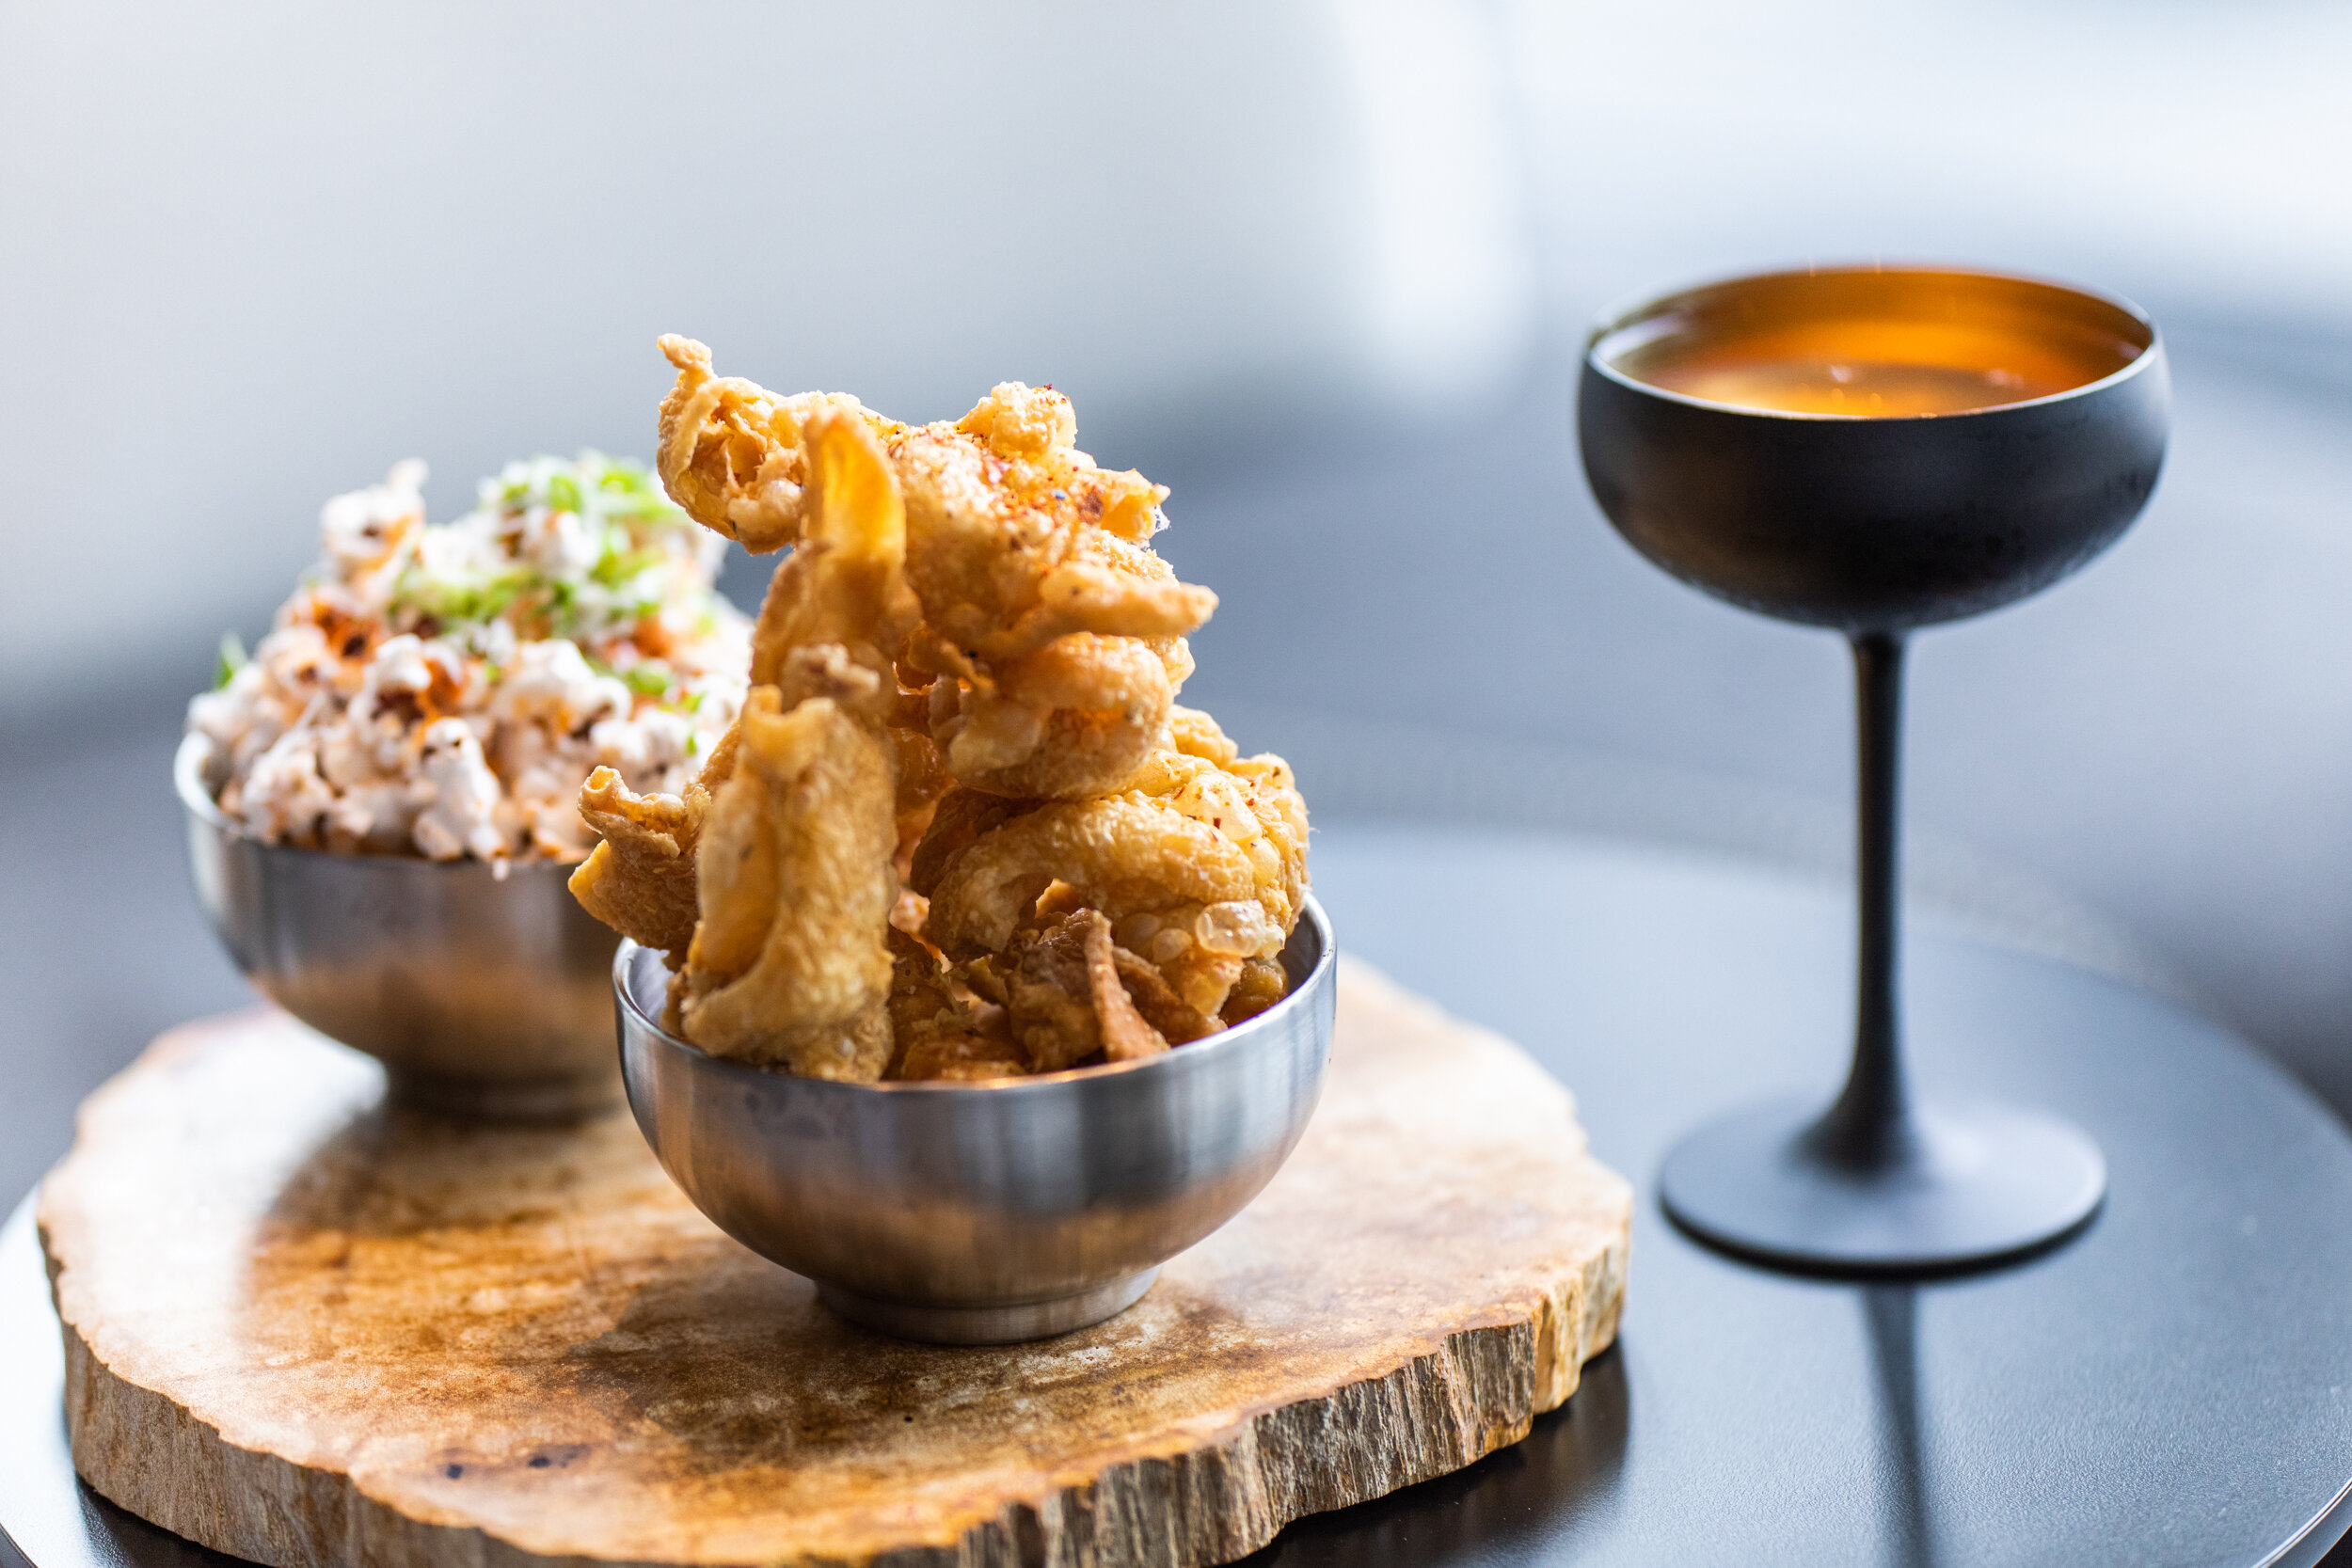 Popcorn with chicken skins and cocktail 3.jpg